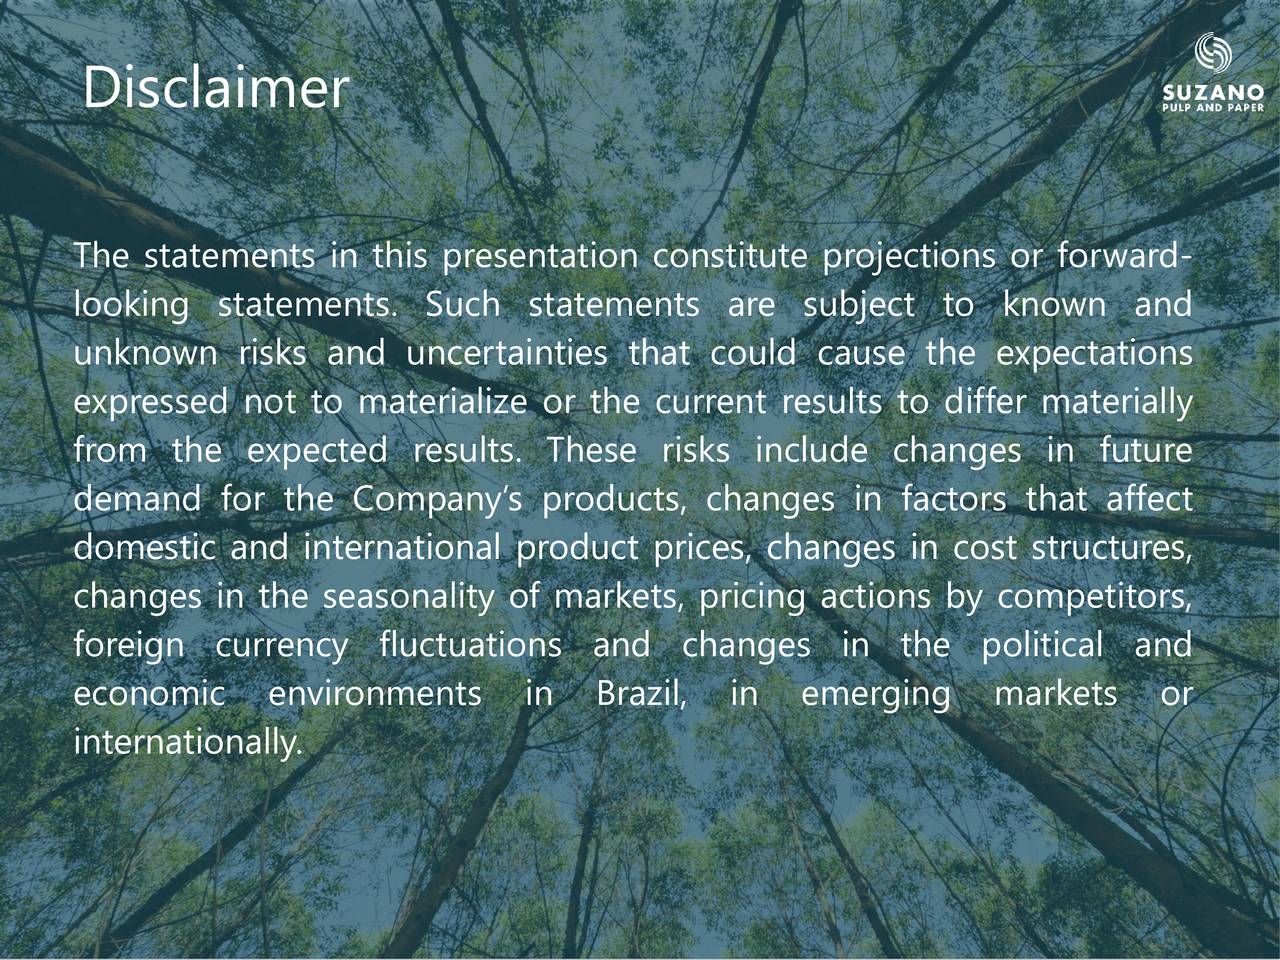 The statements in this presentation constitute projections or forward- looking statements. Such statements are subject to known and unknown risks and uncertainties that could cause the expectations expressed not to materialize or the current results to differ materially from the expected results. These risks include changes in future demand for the Companys products, changes in factors that affect domestic and international product prices, changes in cost structures, changes in the seasonality of markets, pricing actions by competitors, foreign currency fluctuations and changes in the political and economic environments in Brazil, in emerging markets or internationally.